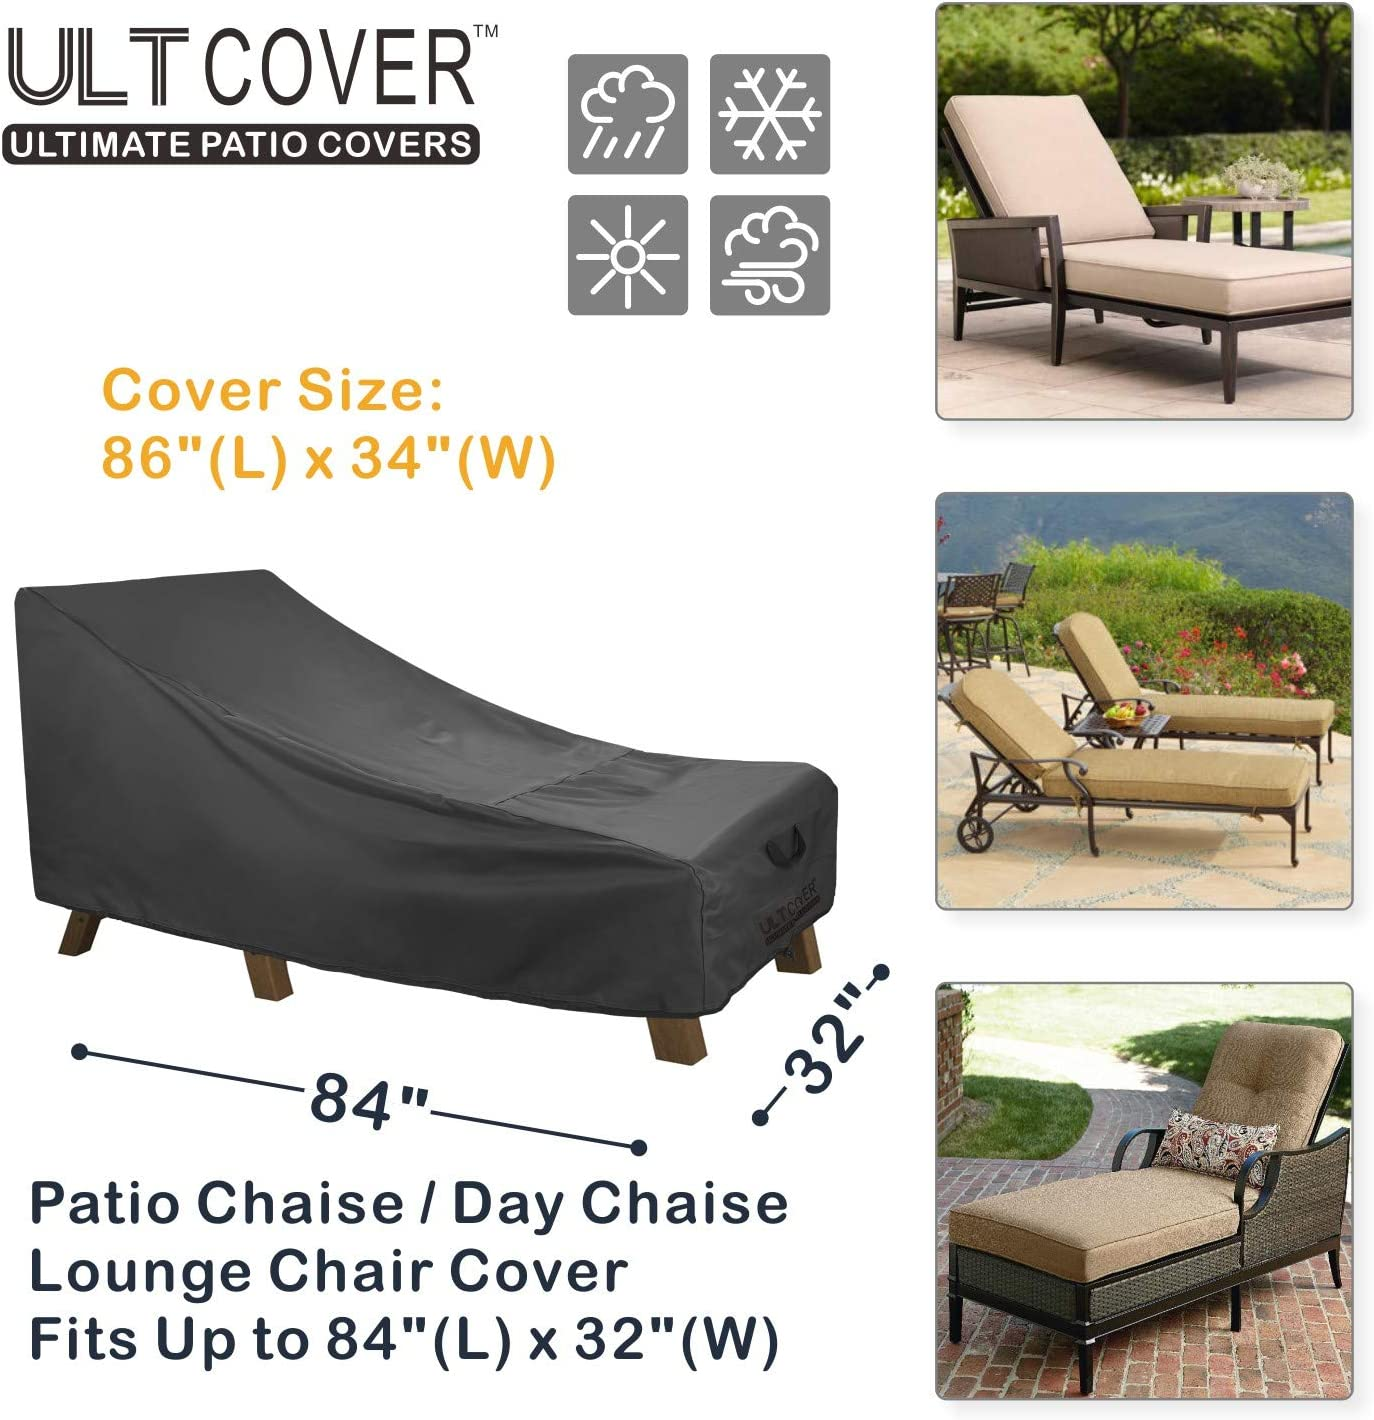 68L x 30W x 30H inch Black ULTCOVER Waterproof Patio Lounge Chair Cover Heavy Duty Outdoor Chaise Lounge Covers 2 Pack